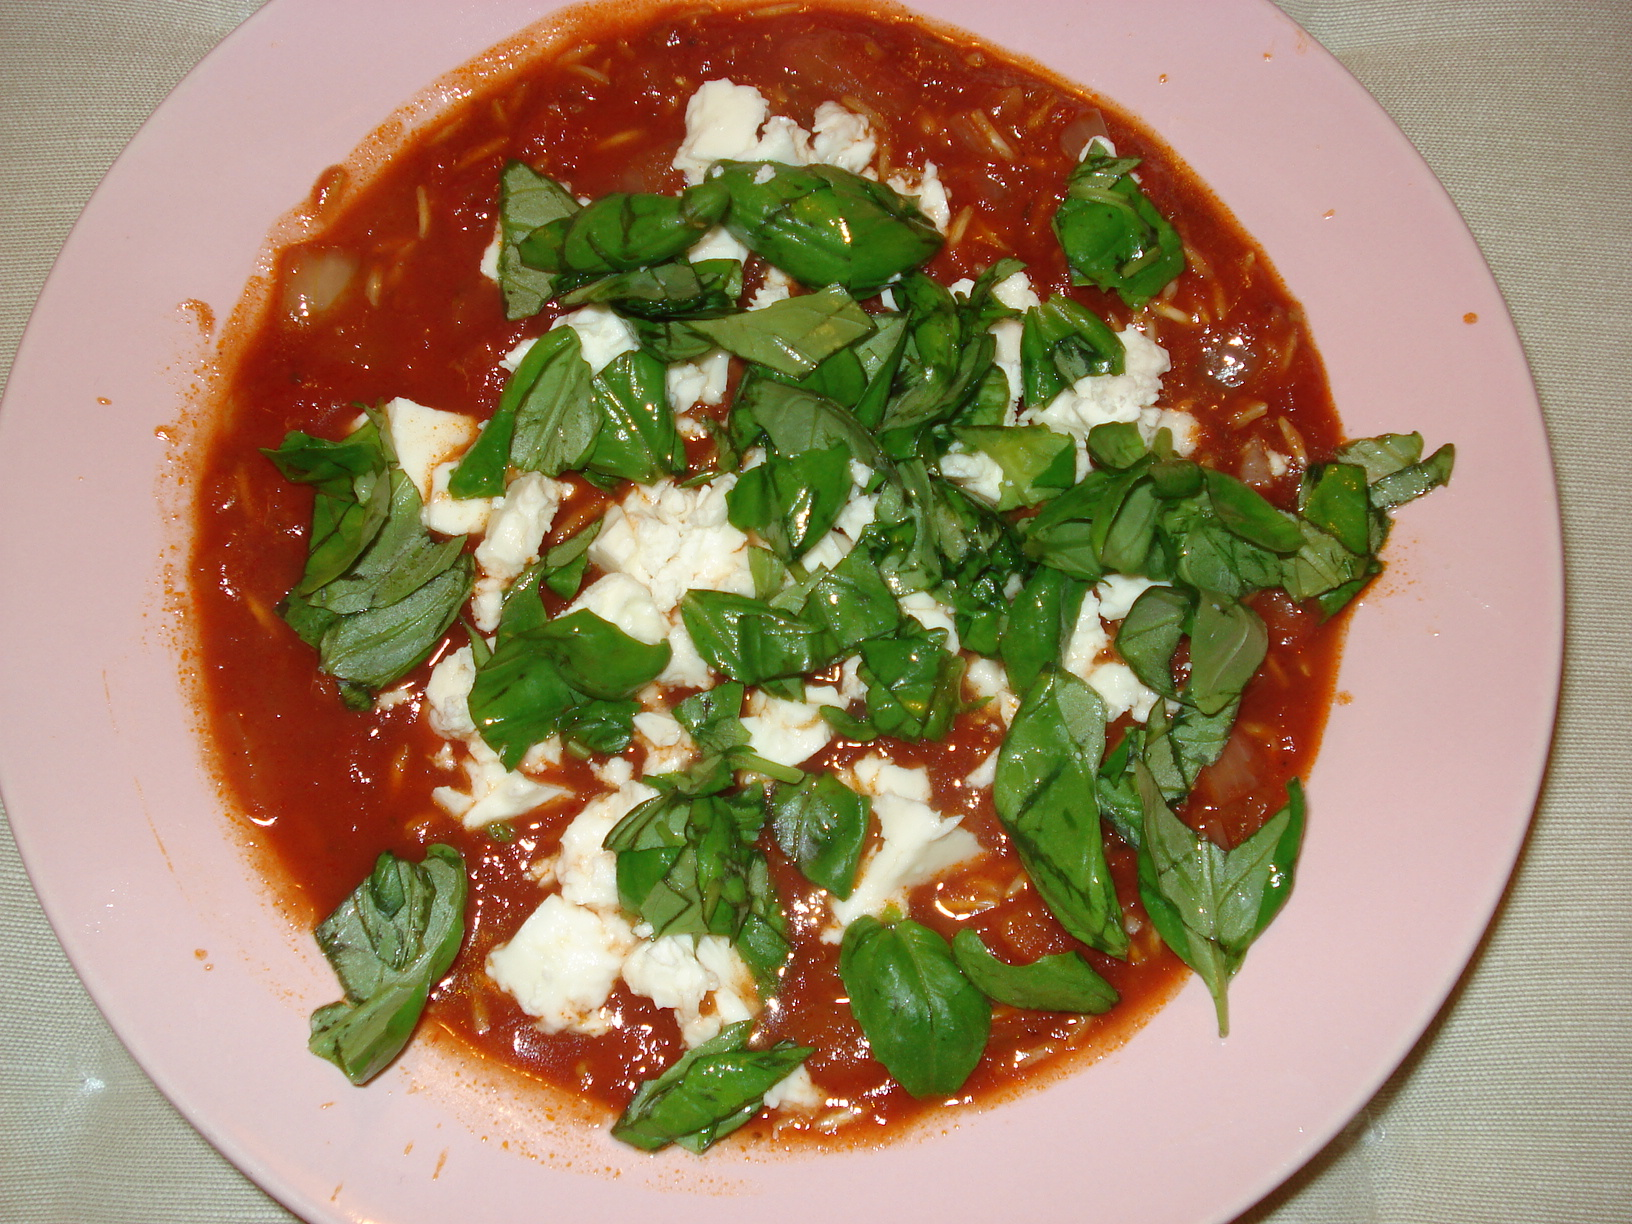 Tomato soup with rice, feta cheese and basil